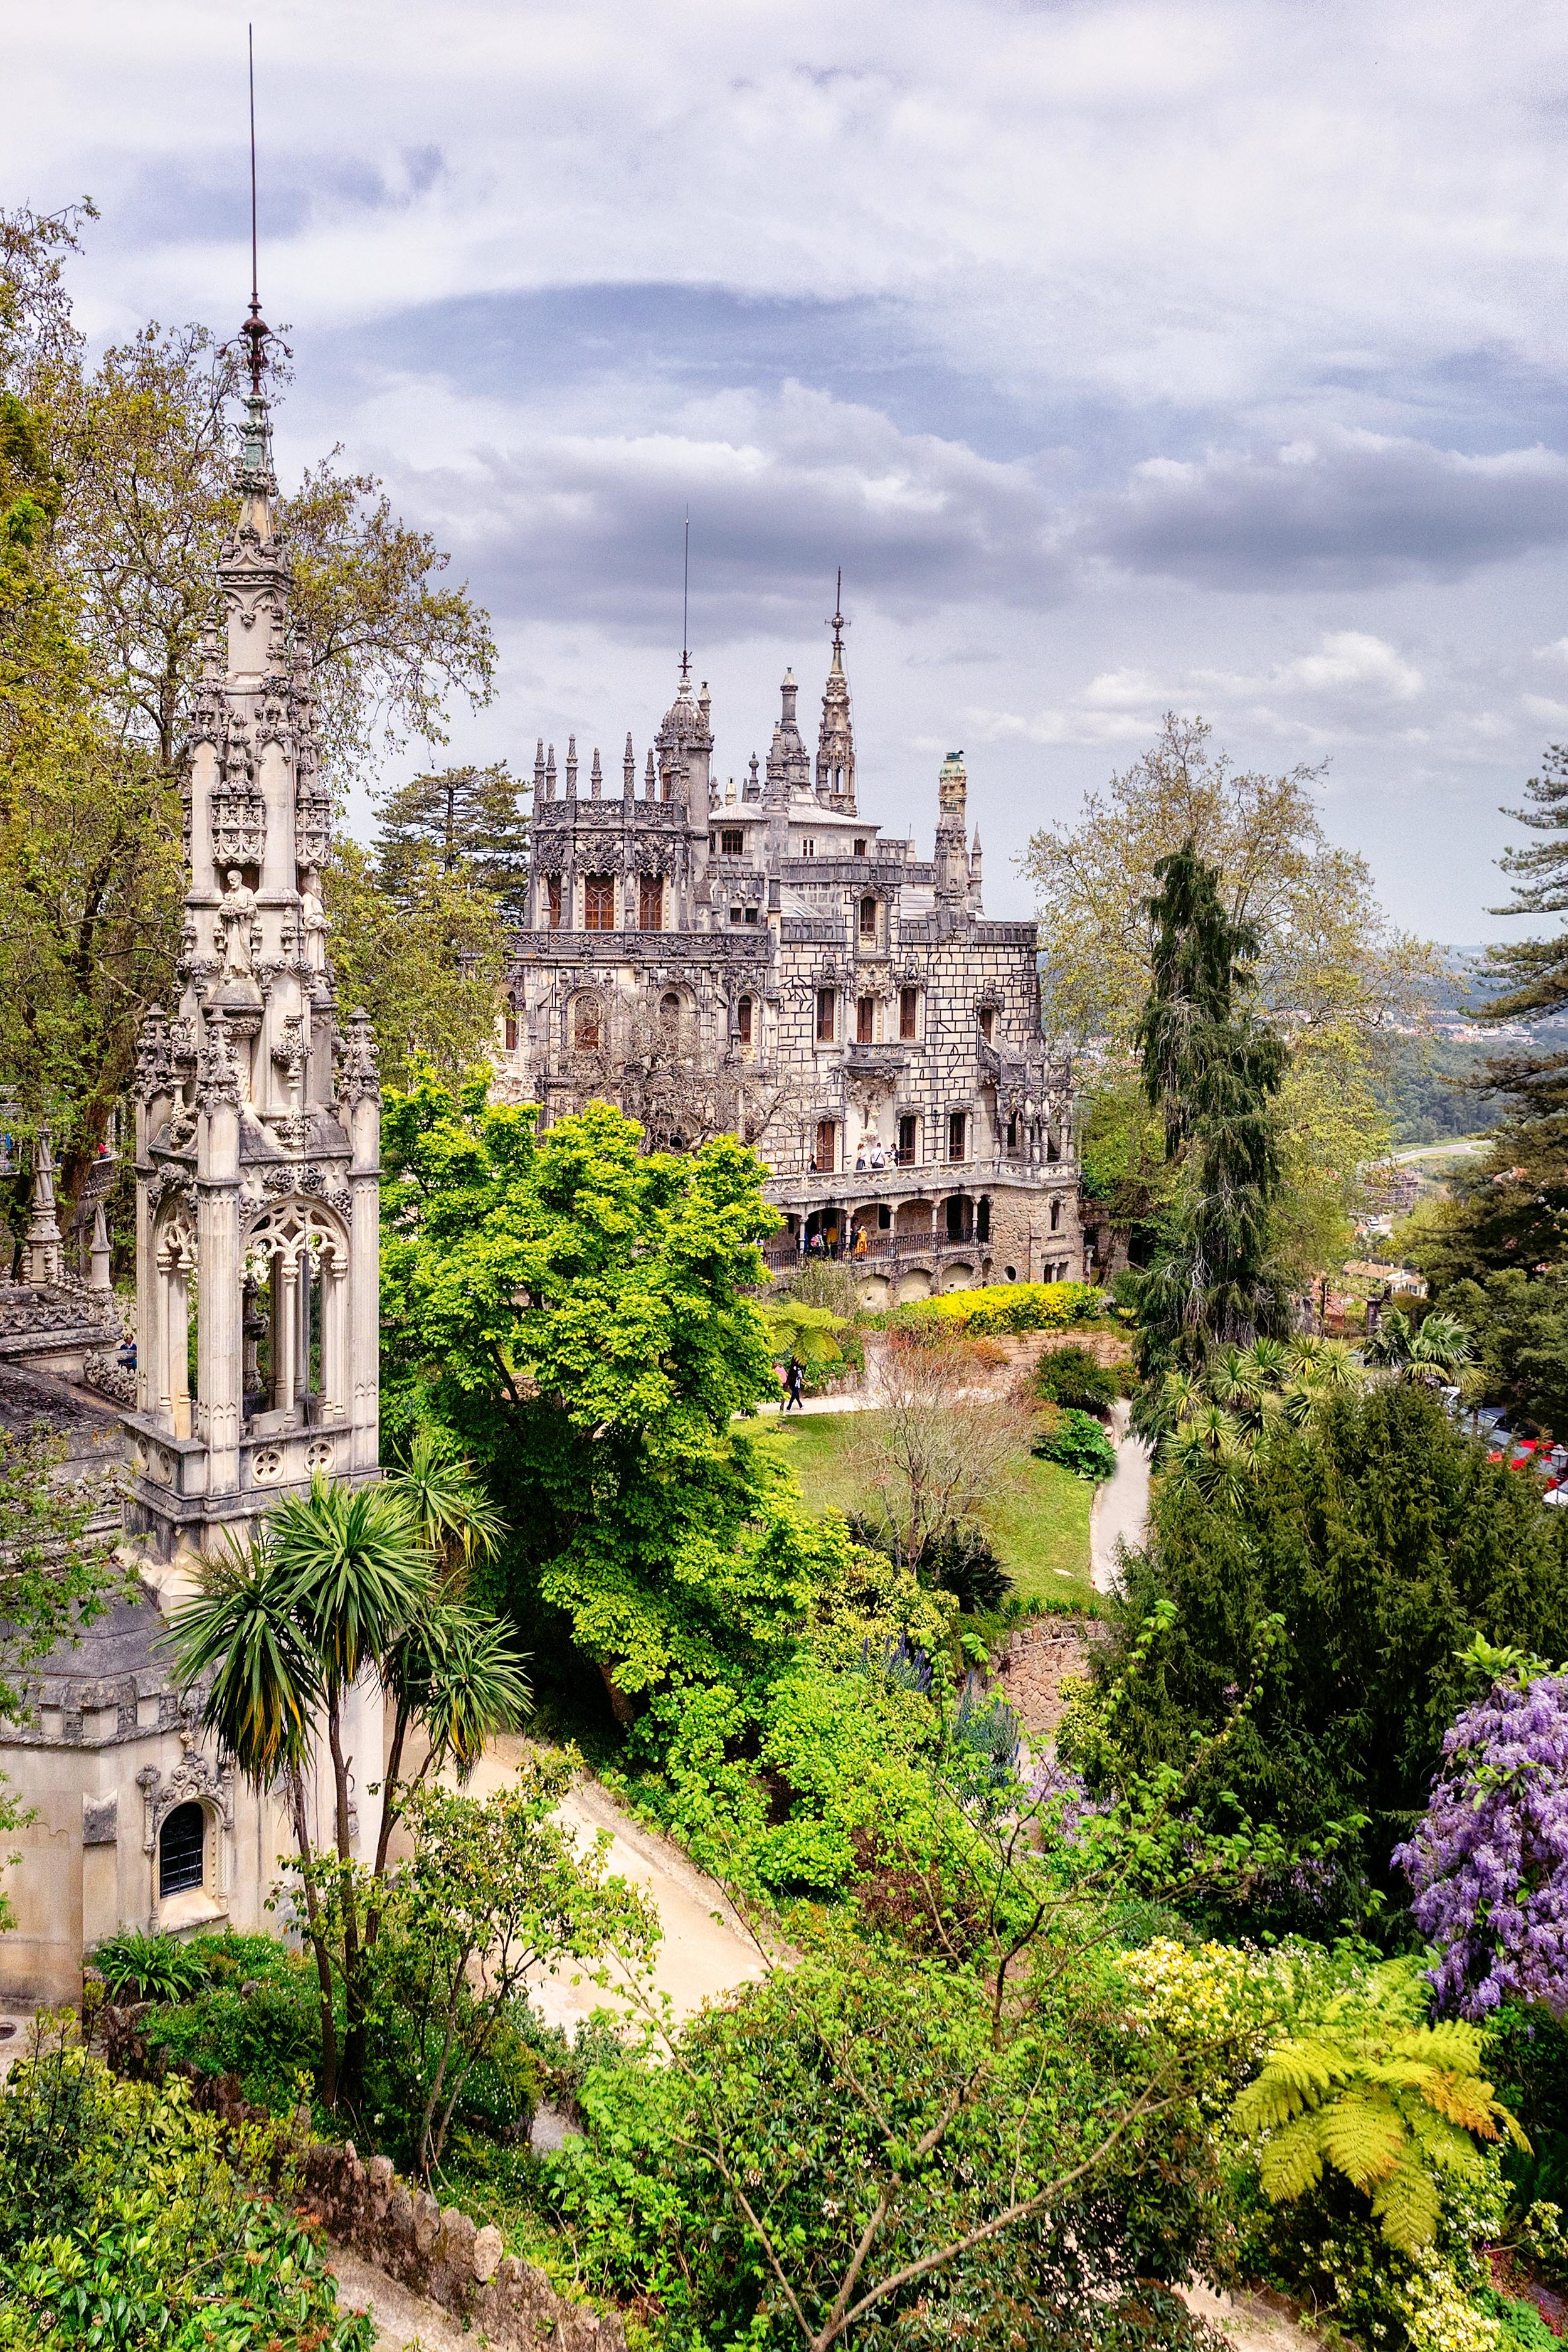 Portugal. Travel. Sintra. Sunshine. Hotel. History. view. room with a view. pena palace.  palace. town. old town. castle. castelo dos mouros. on the bridge. Quinta da Regaleira (2).jpg